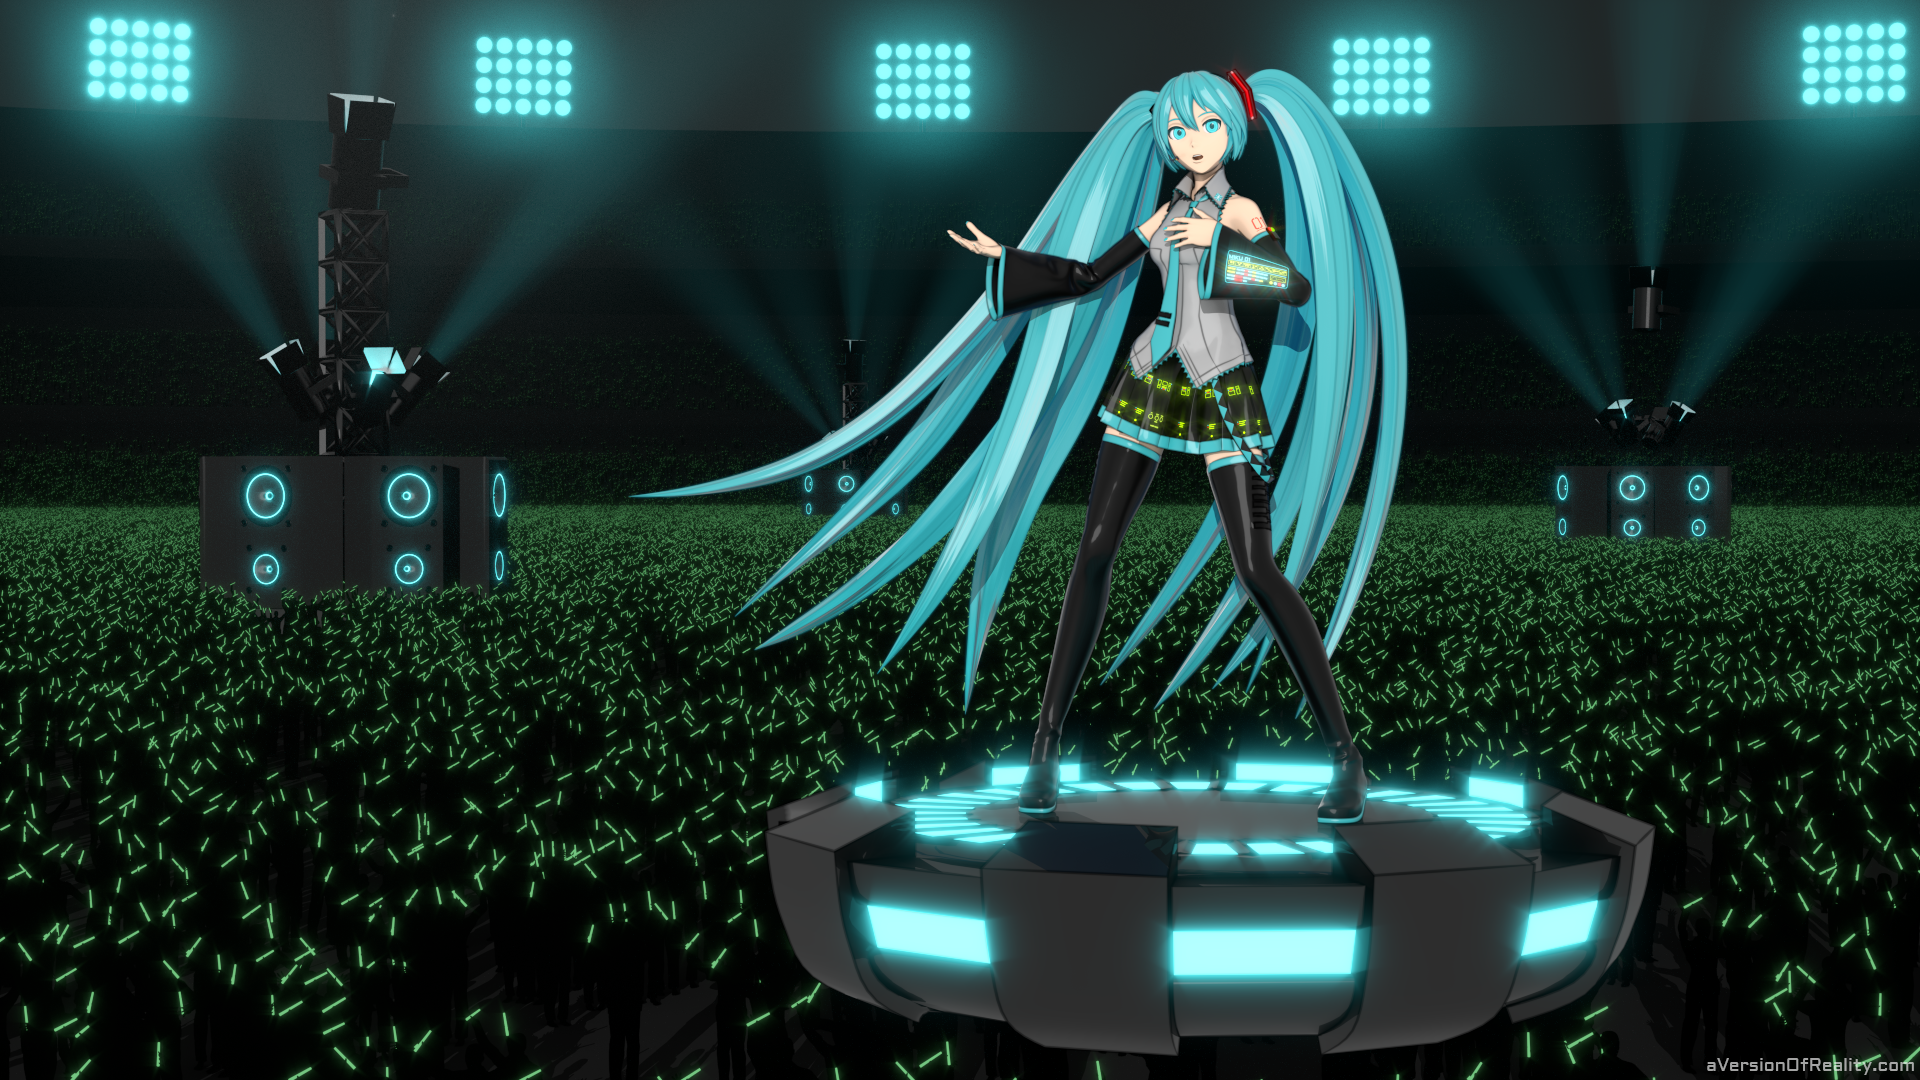 Miku-Stadium-Show---aVersionOfReality